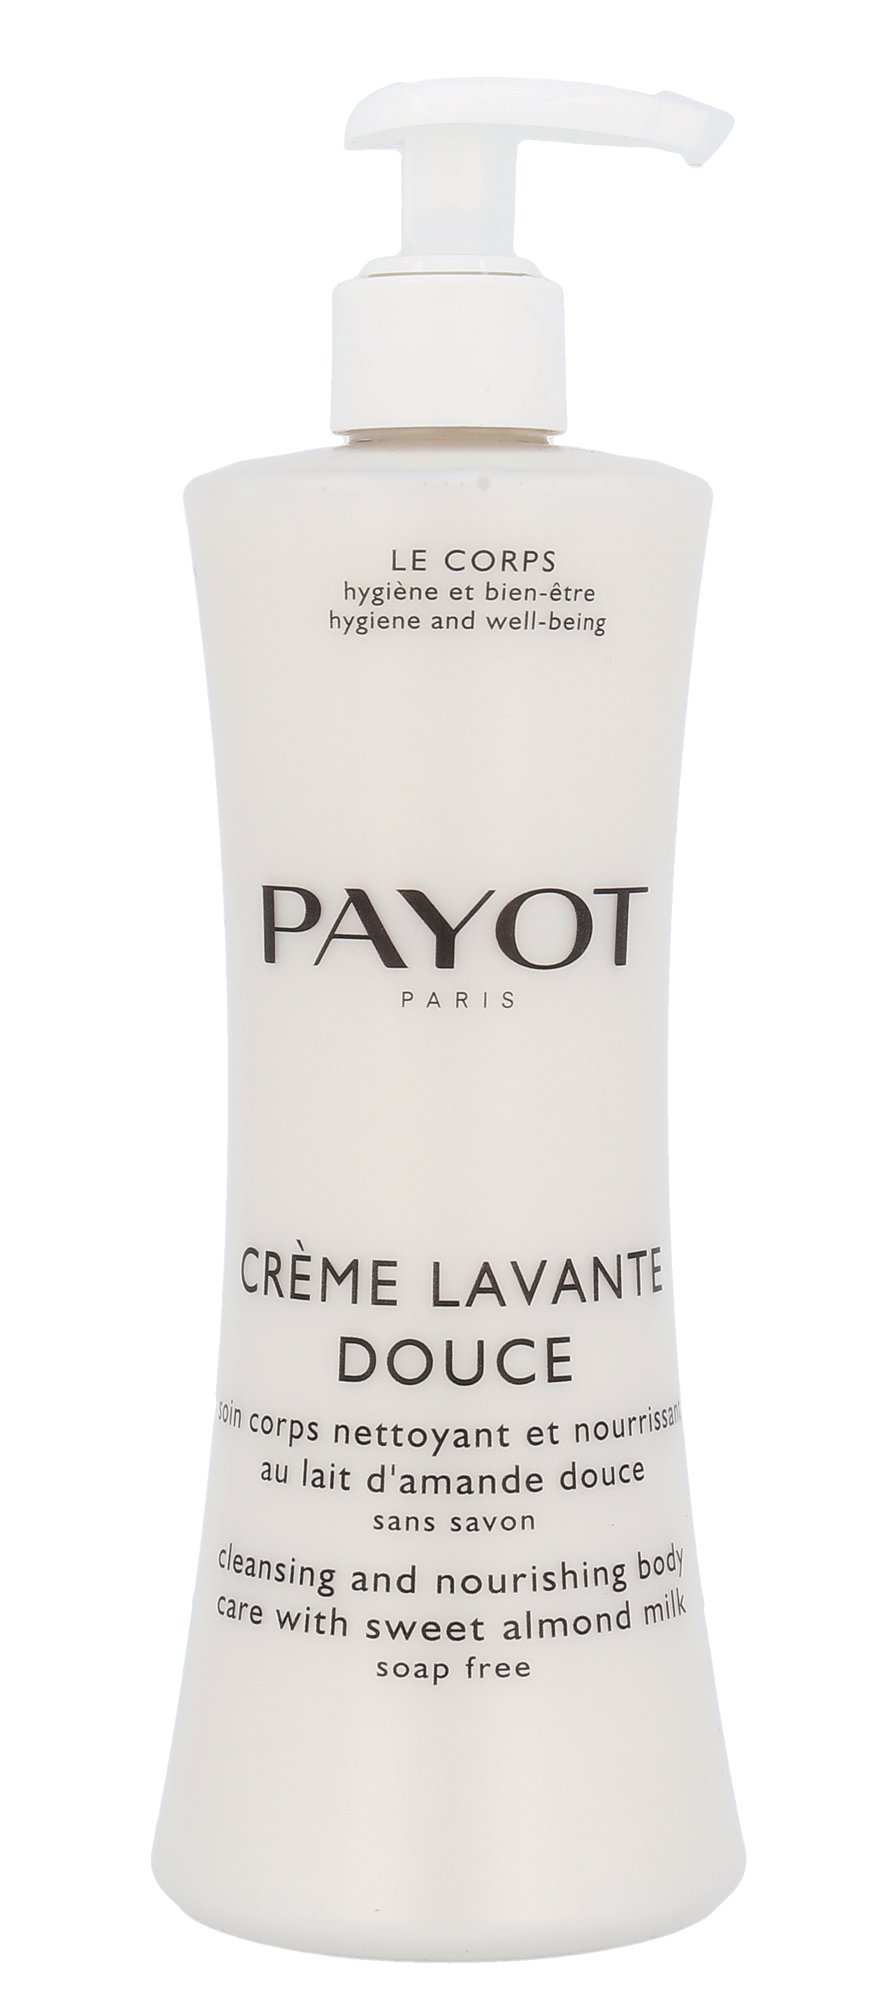 PAYOT Le Corps Cleansing And Nourishing Body Care, Sprchovací cream 400ml